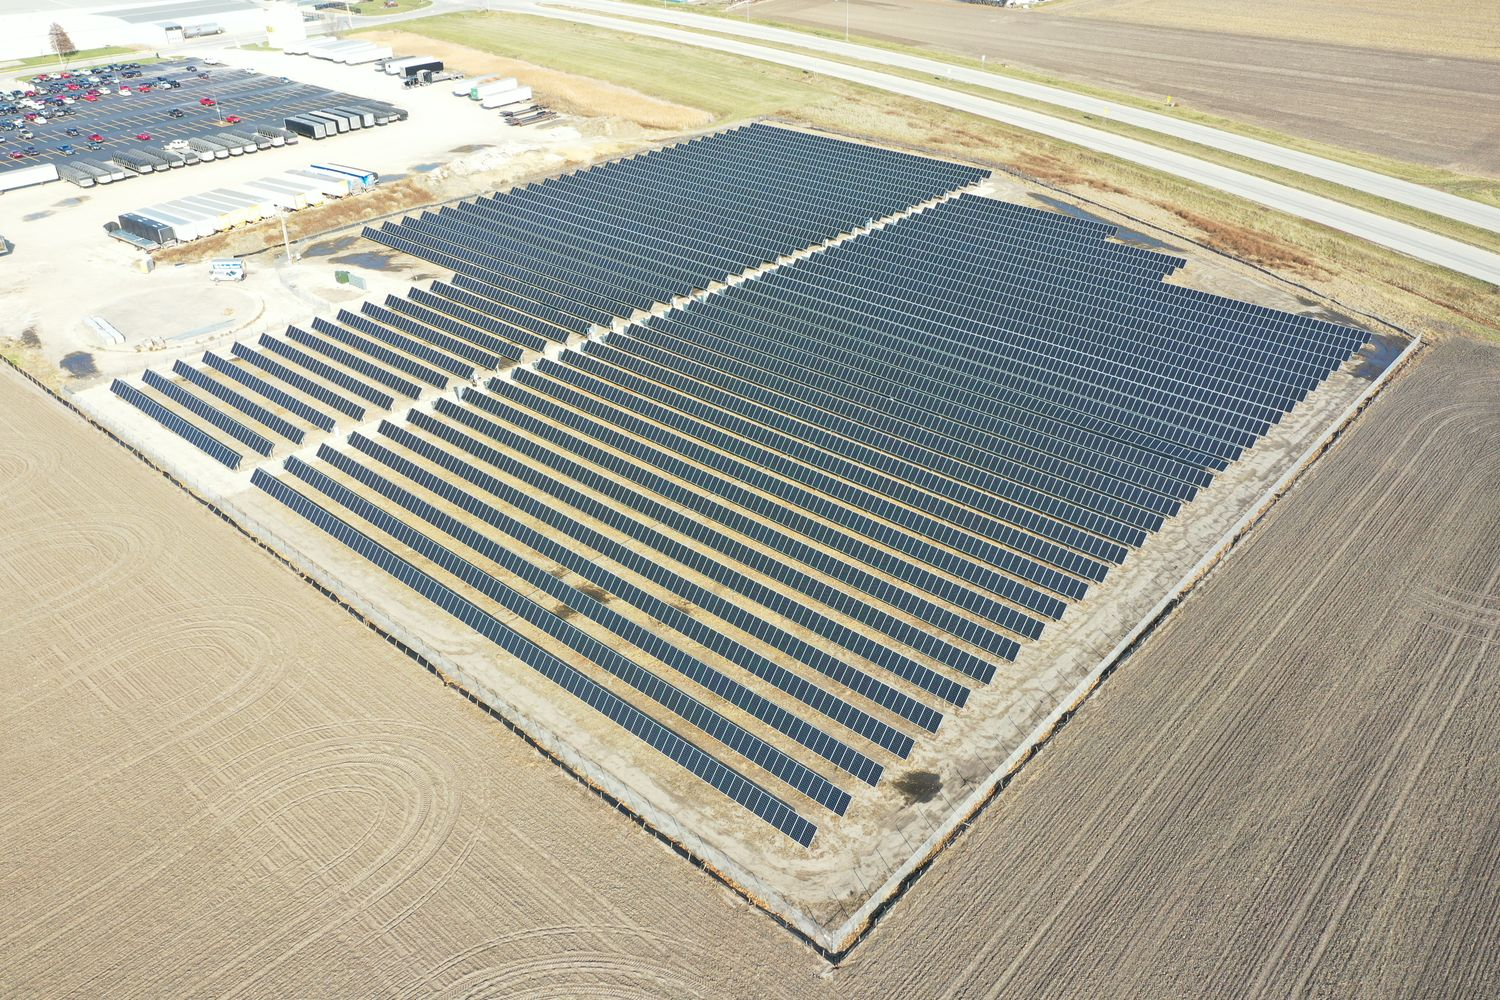 New Solar Energy System Helps Power AGCO Manufacturing Facility in Illinois